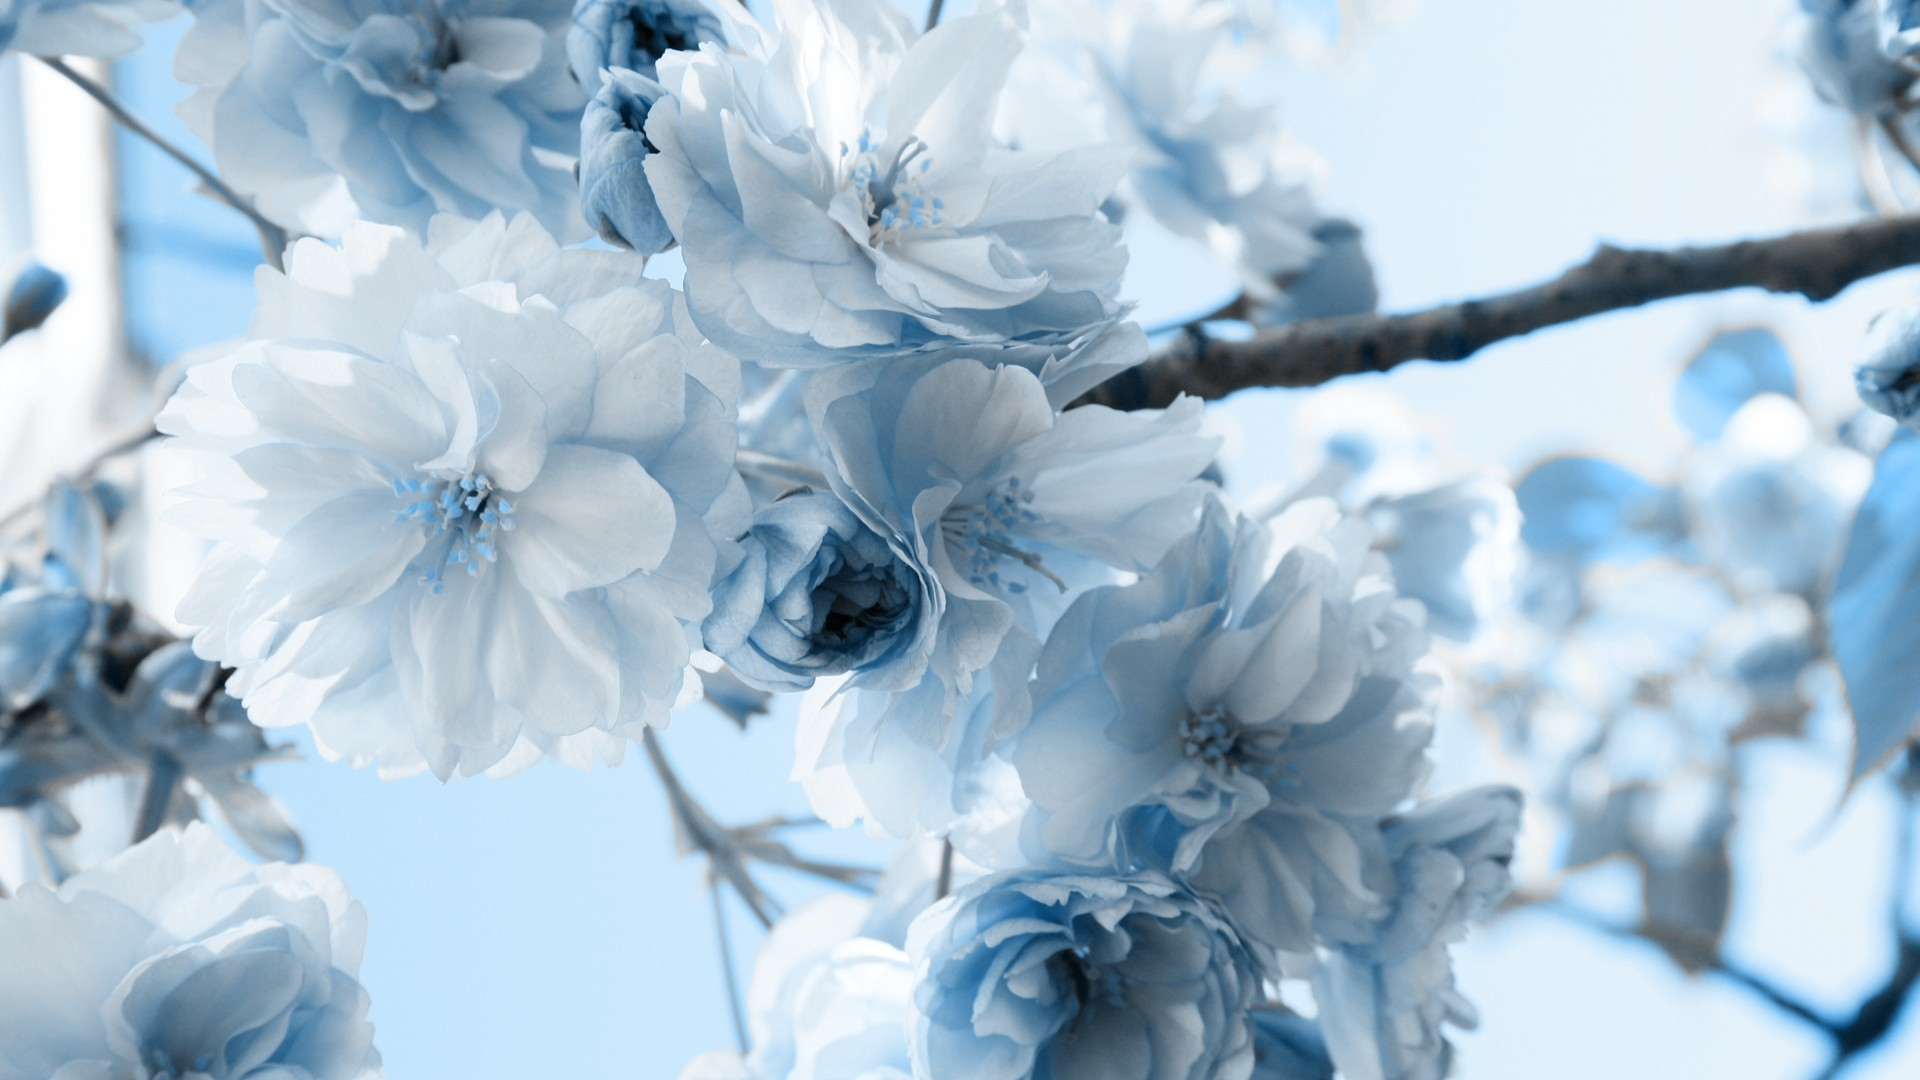 Res: 1920x1080, White Wallpaper With Blue Flowers 9 Cool Hd